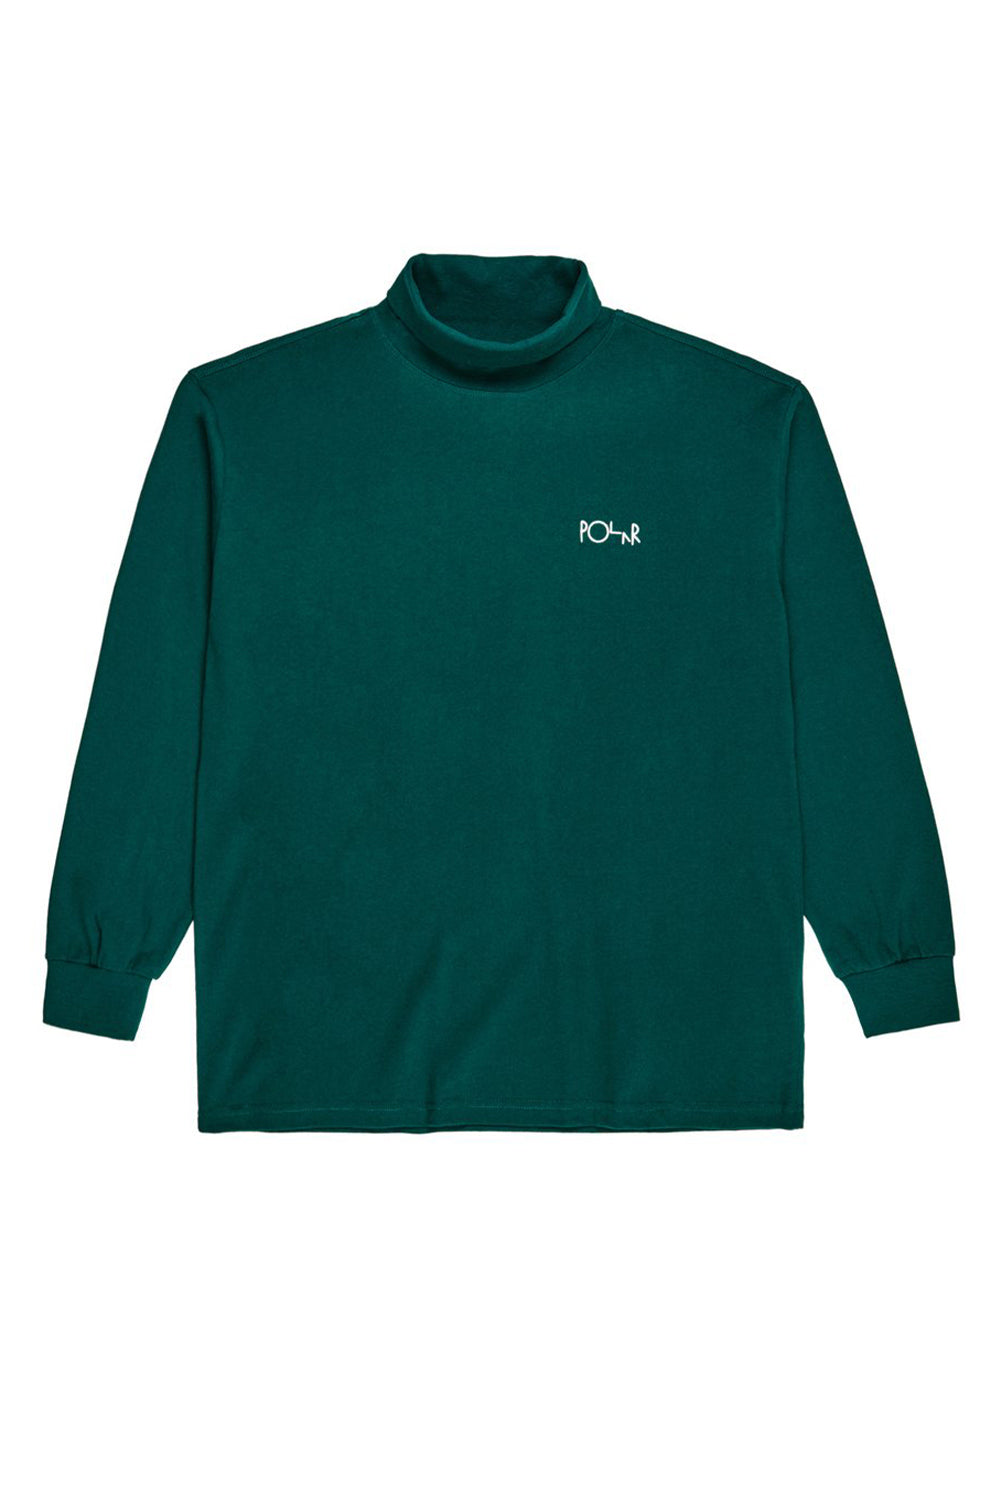 Polar Skate Co Script Turtleneck - Dark Green | Shop Polar Skate Co online